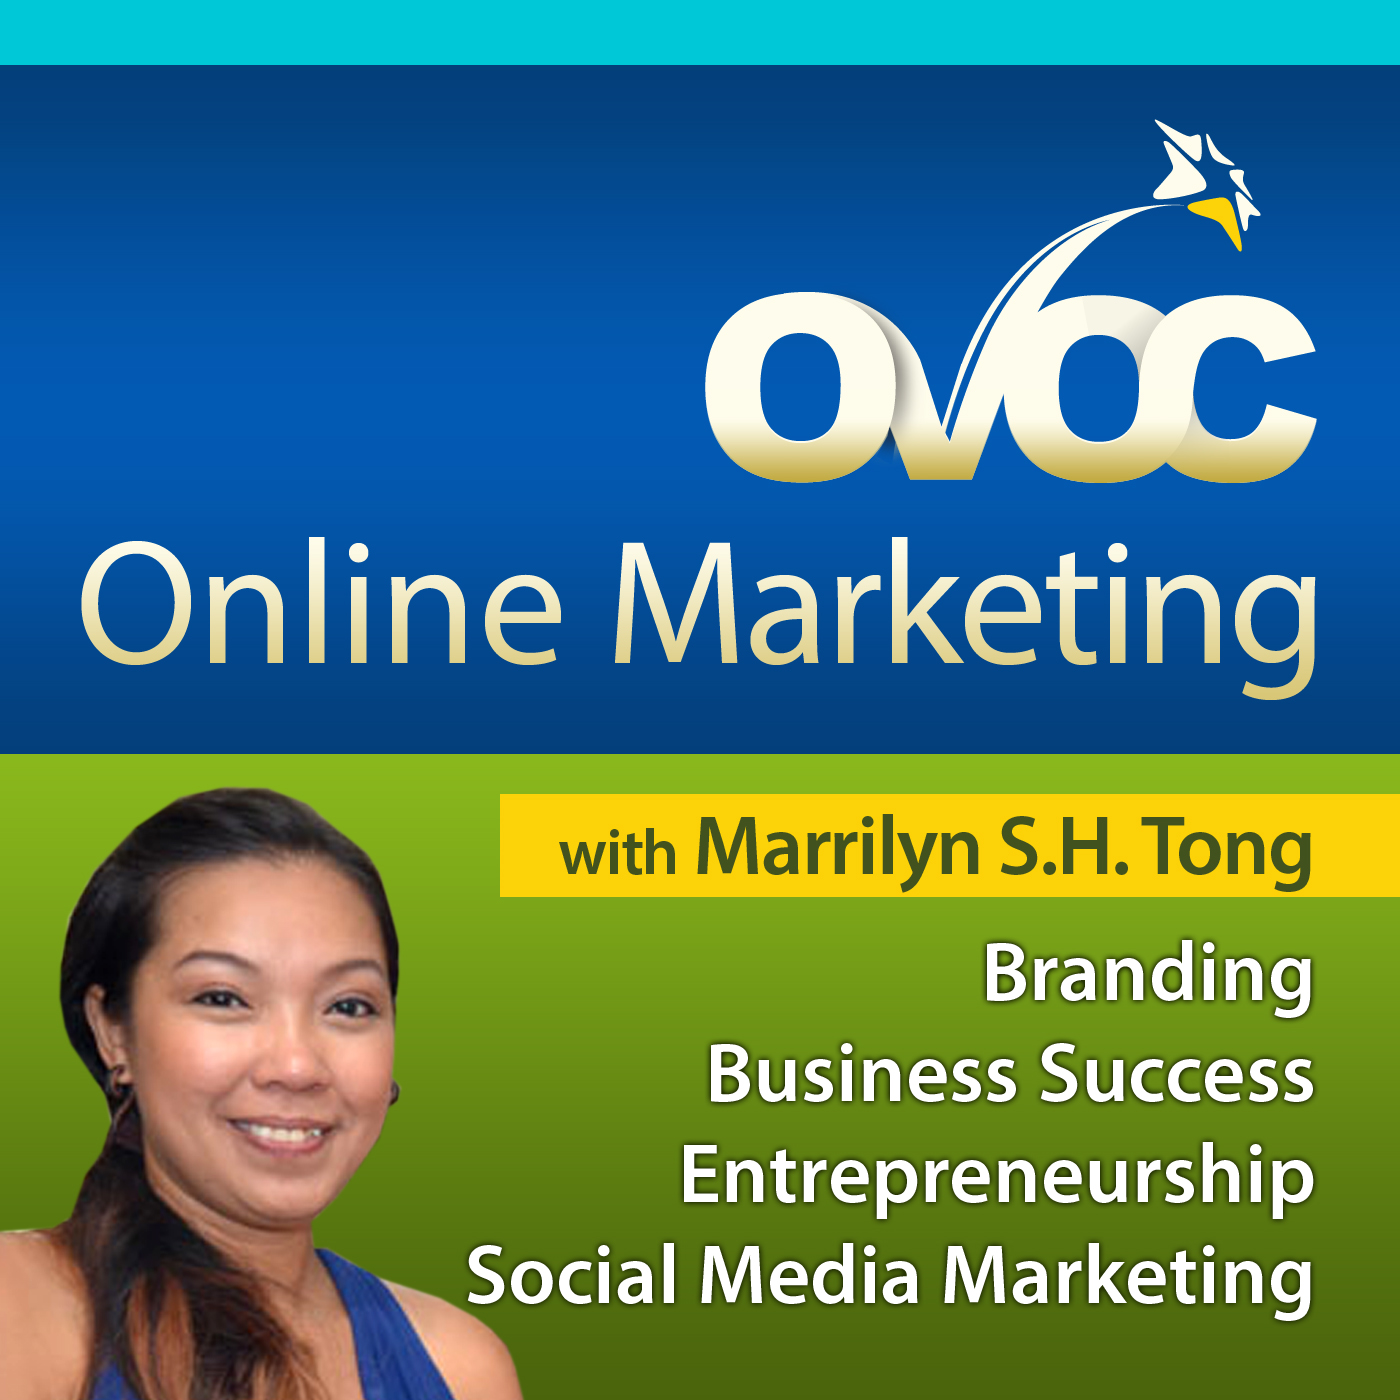 OVOC Online Marketing Podcast: Social Media Marketing | Branding | Entrepreneurship | Business Success